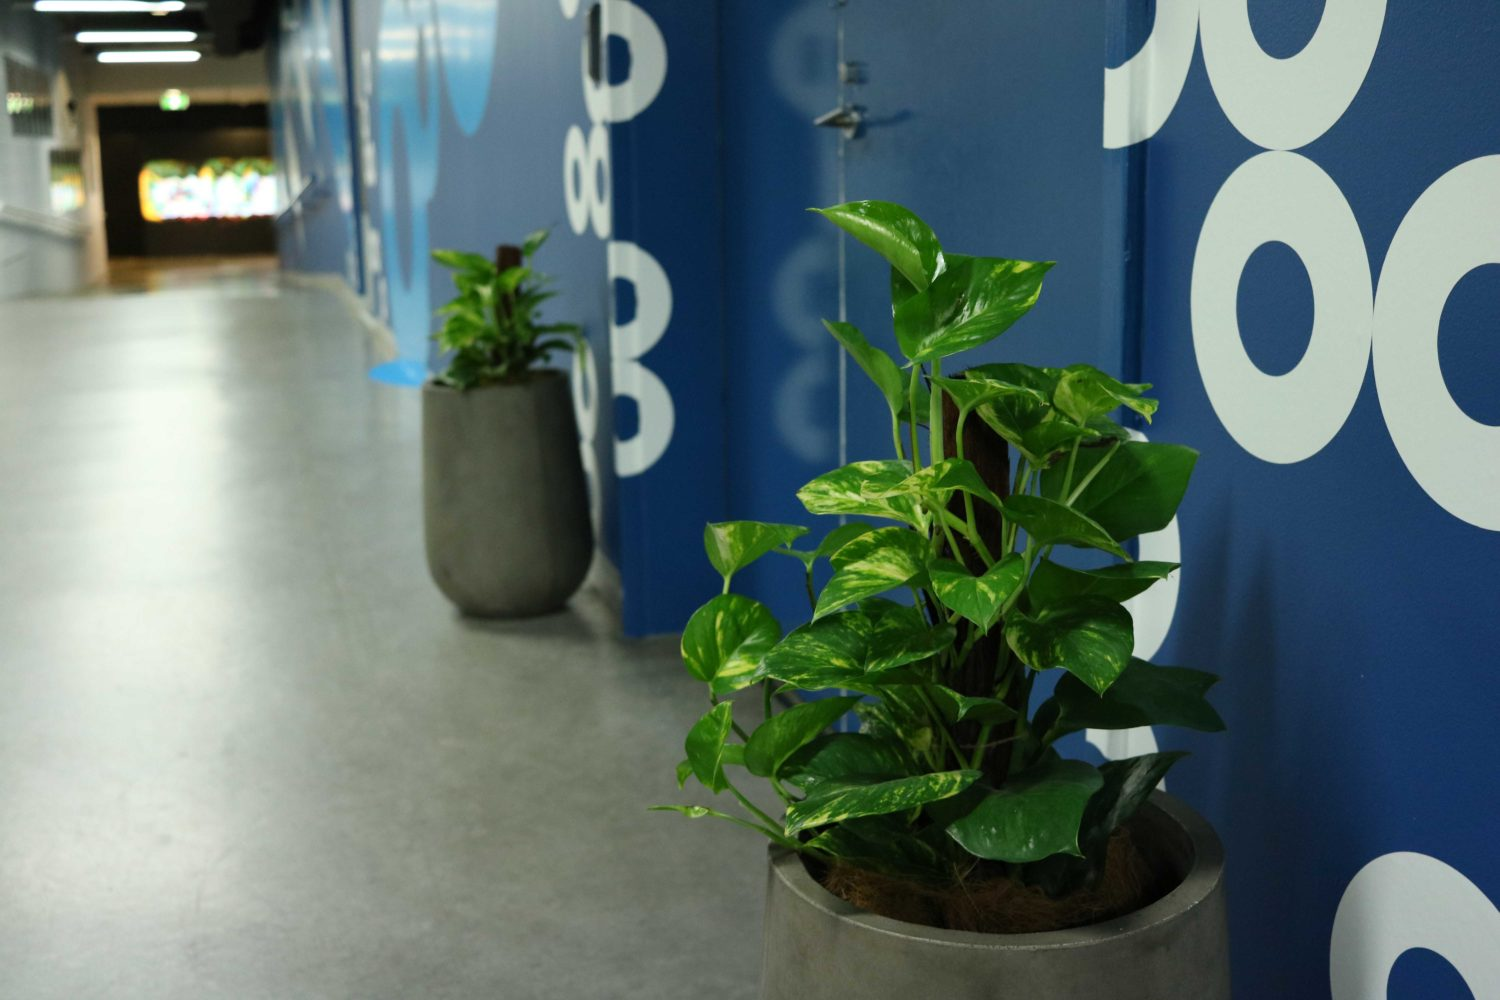 Devils ivy concrete pots indoor event plants melbourne hire